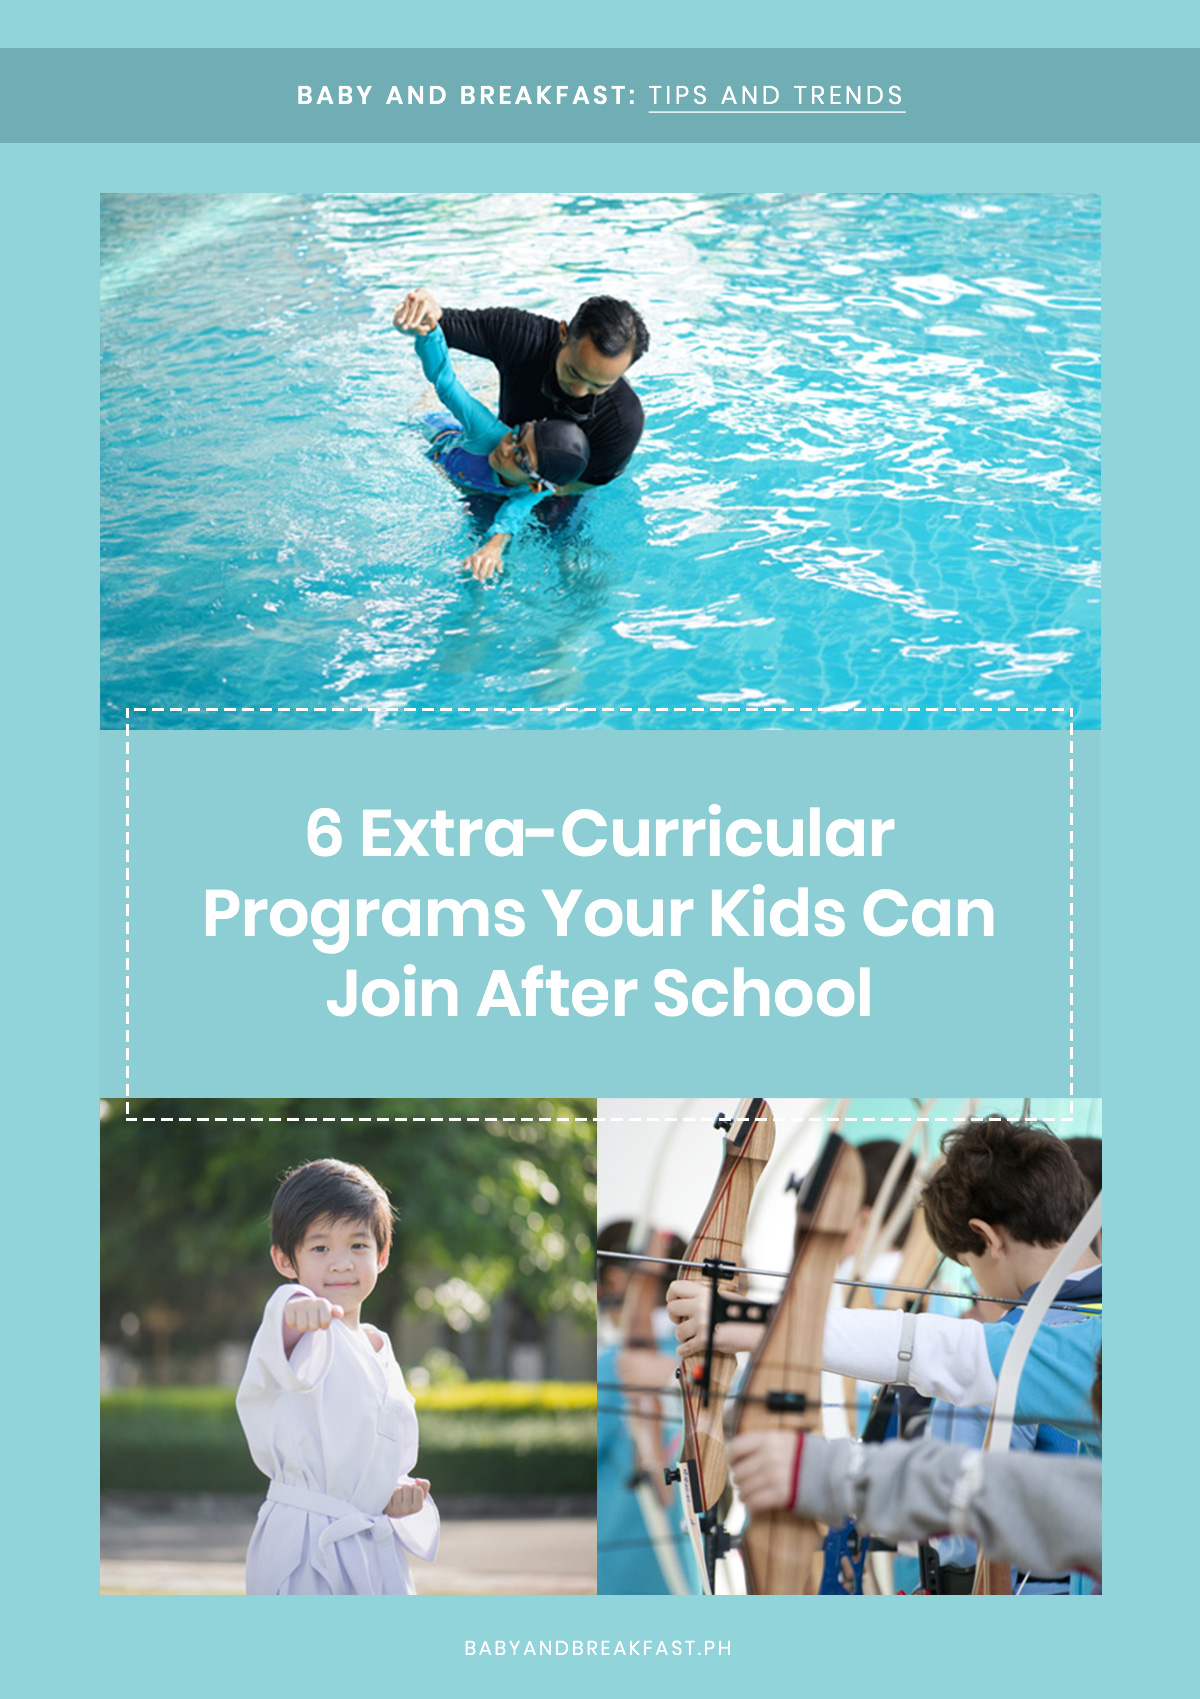 Baby and Breakfast: Tips and Trends 8 Extra-Curricular Programs Your Kids Can Join After School